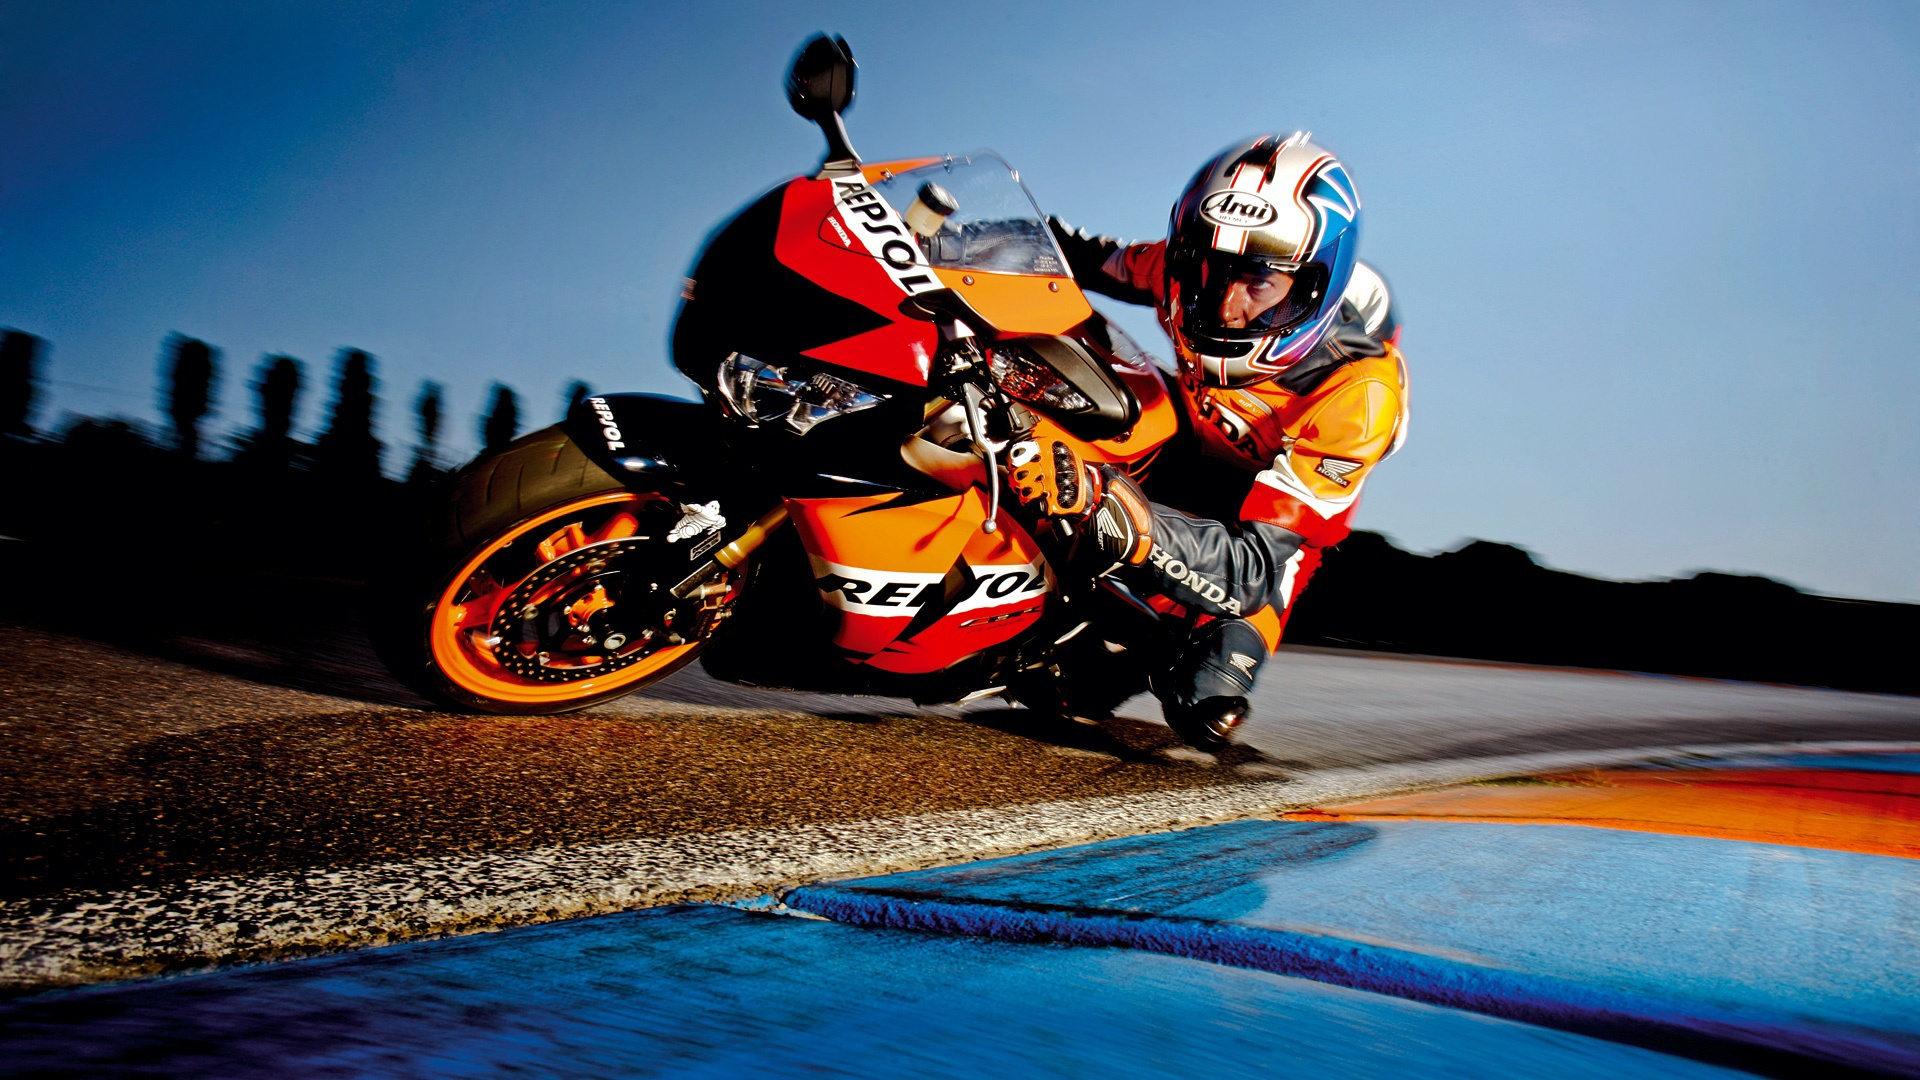 Repsol Honda Riders MotoGP Wallpaper Picture 8971